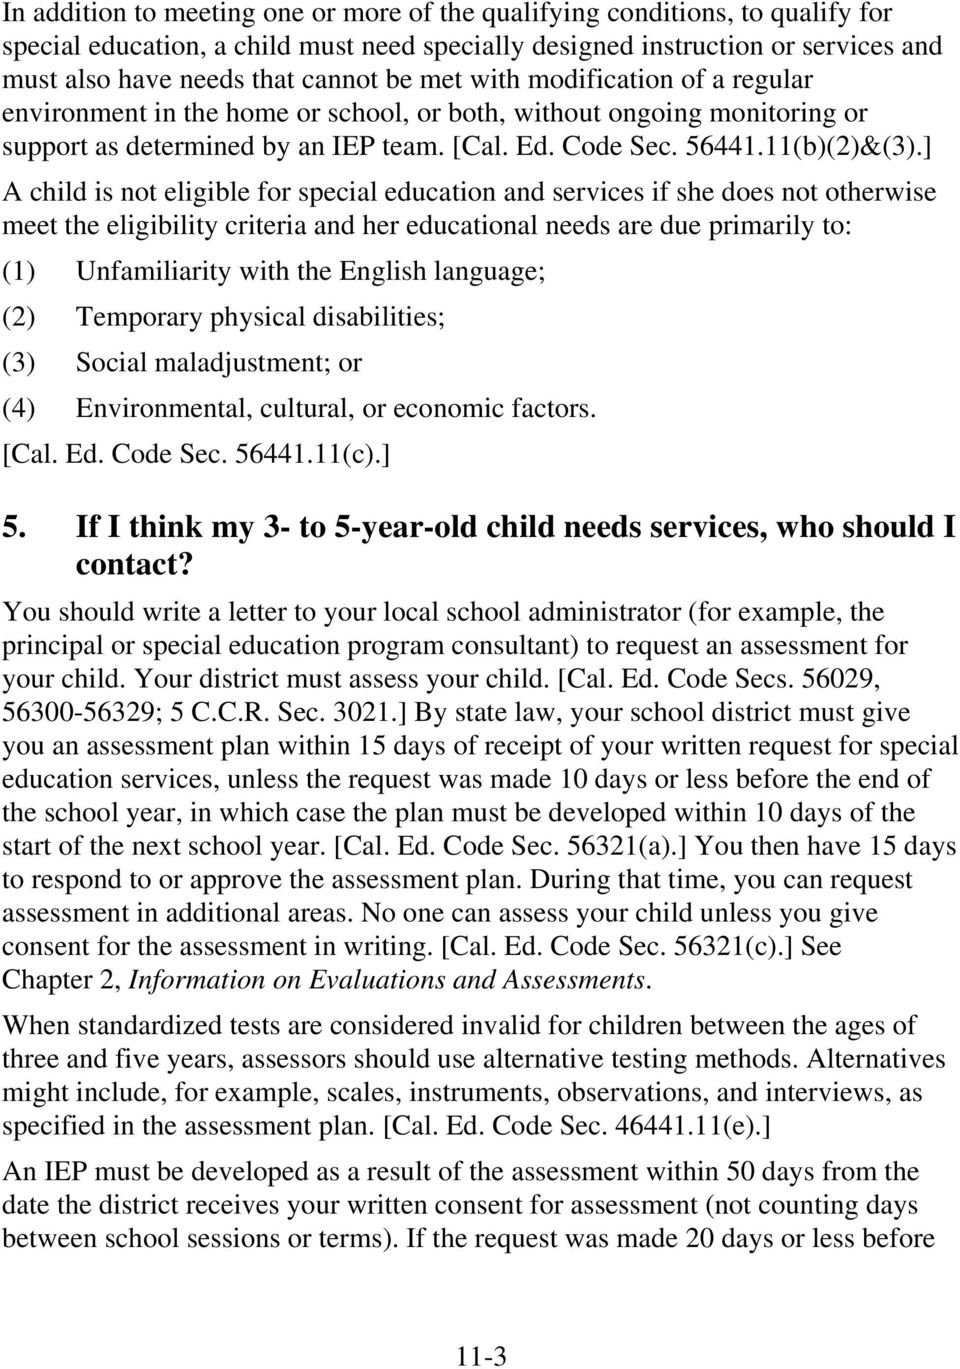 ] A child is not eligible for special education and services if she does not otherwise meet the eligibility criteria and her educational needs are due primarily to: (1) Unfamiliarity with the English